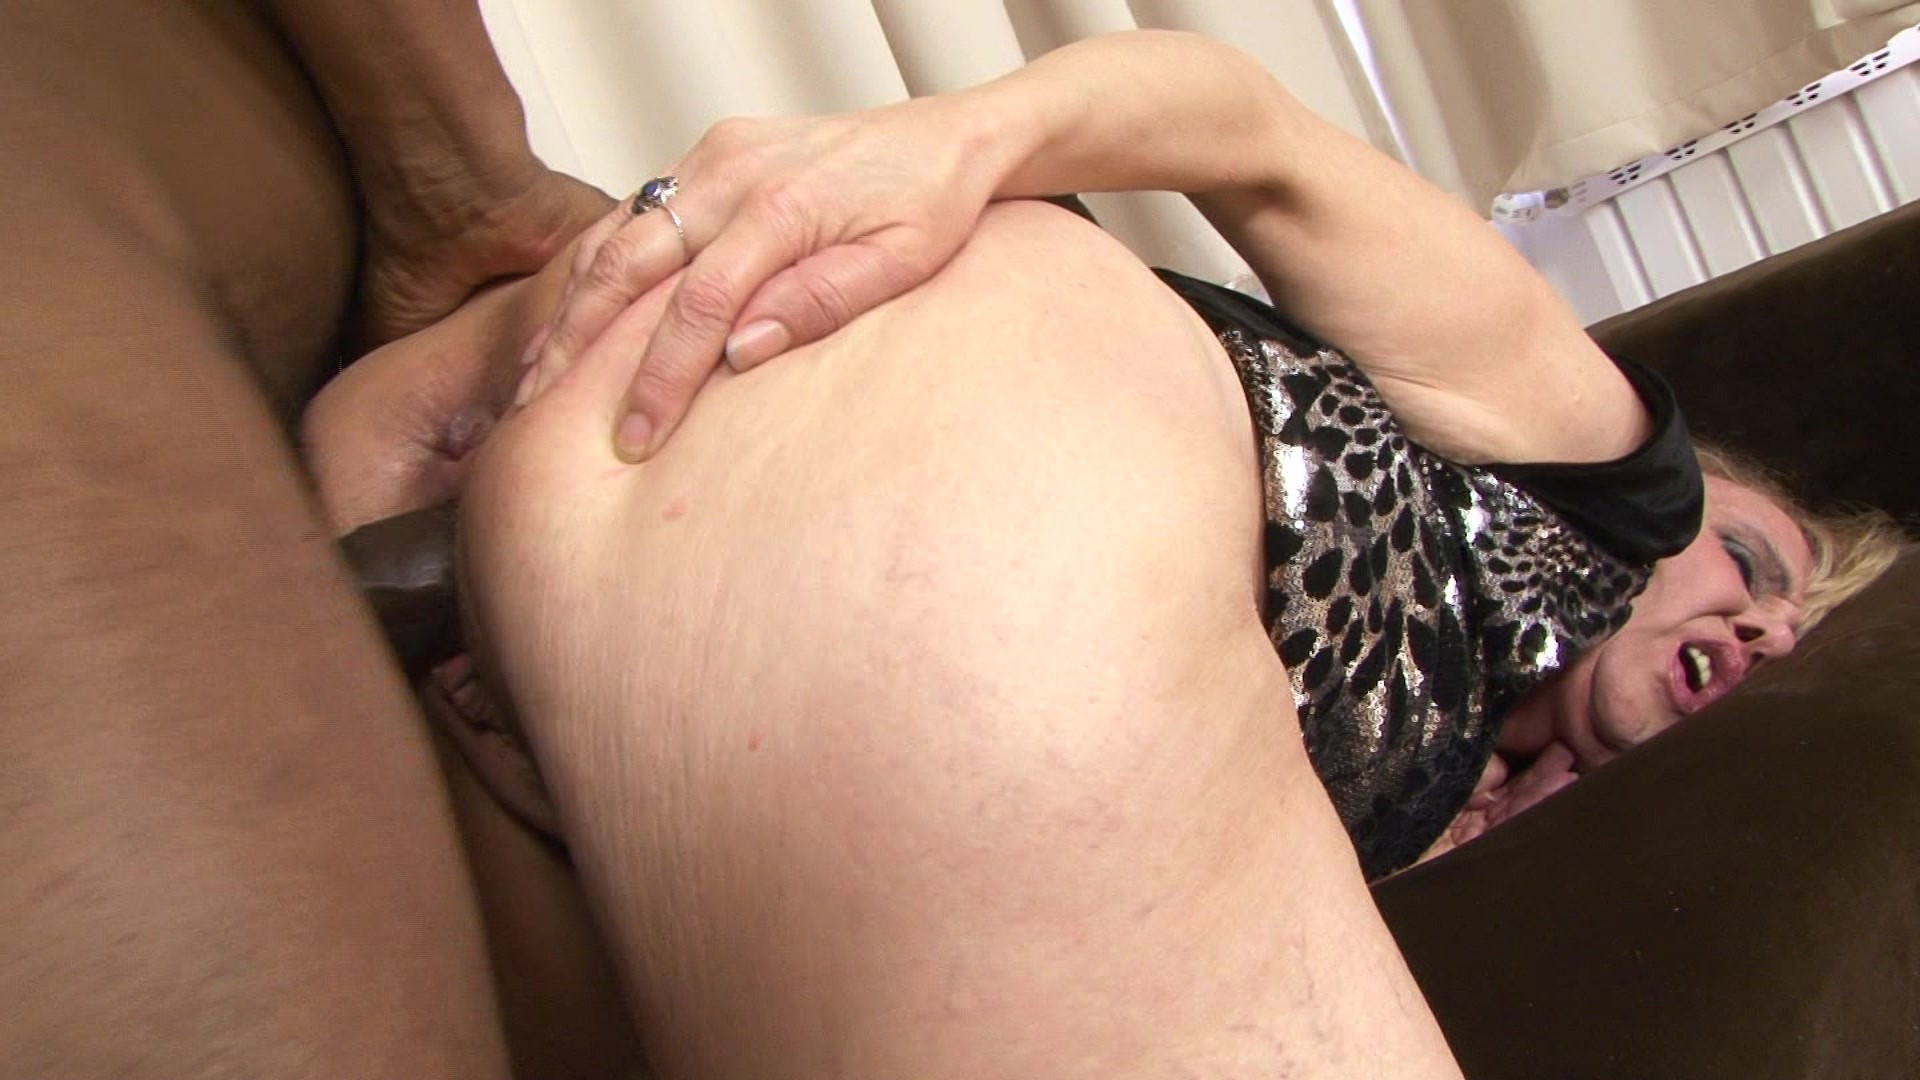 Pervcity Mature Lady Taking Her Deepthroats Oiled And Fucking Free Porn